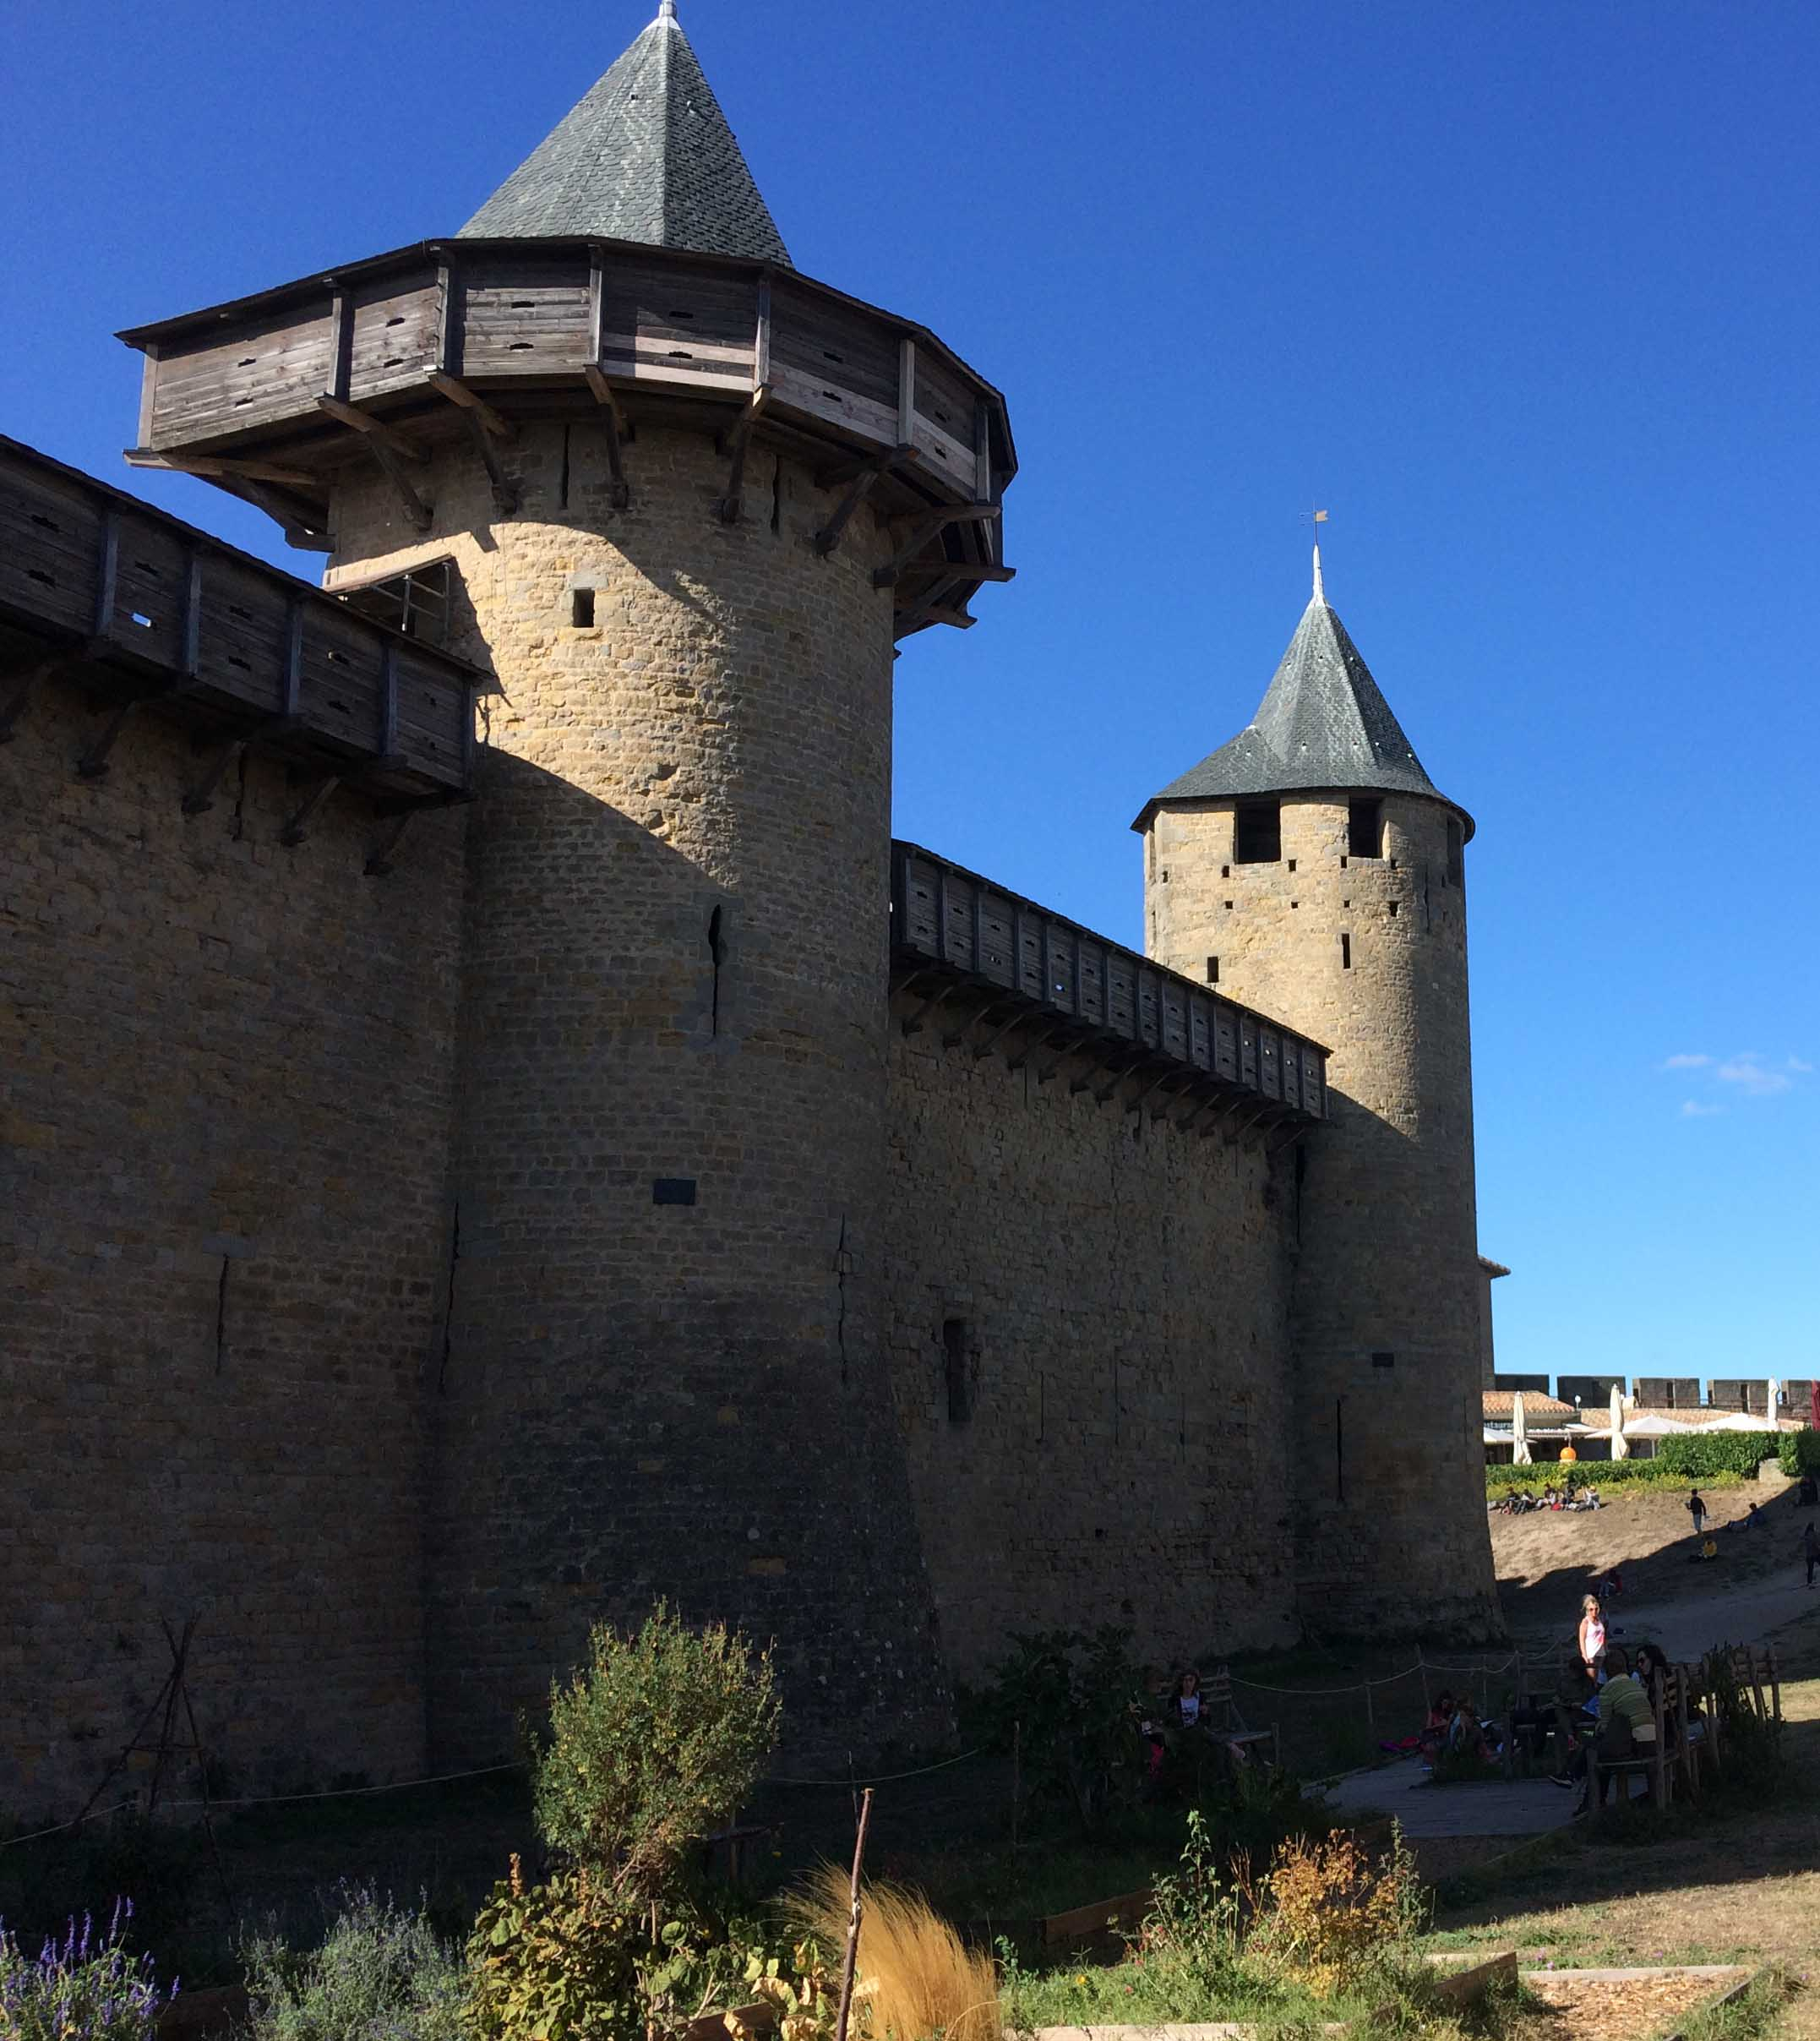 Château at Carcassonne